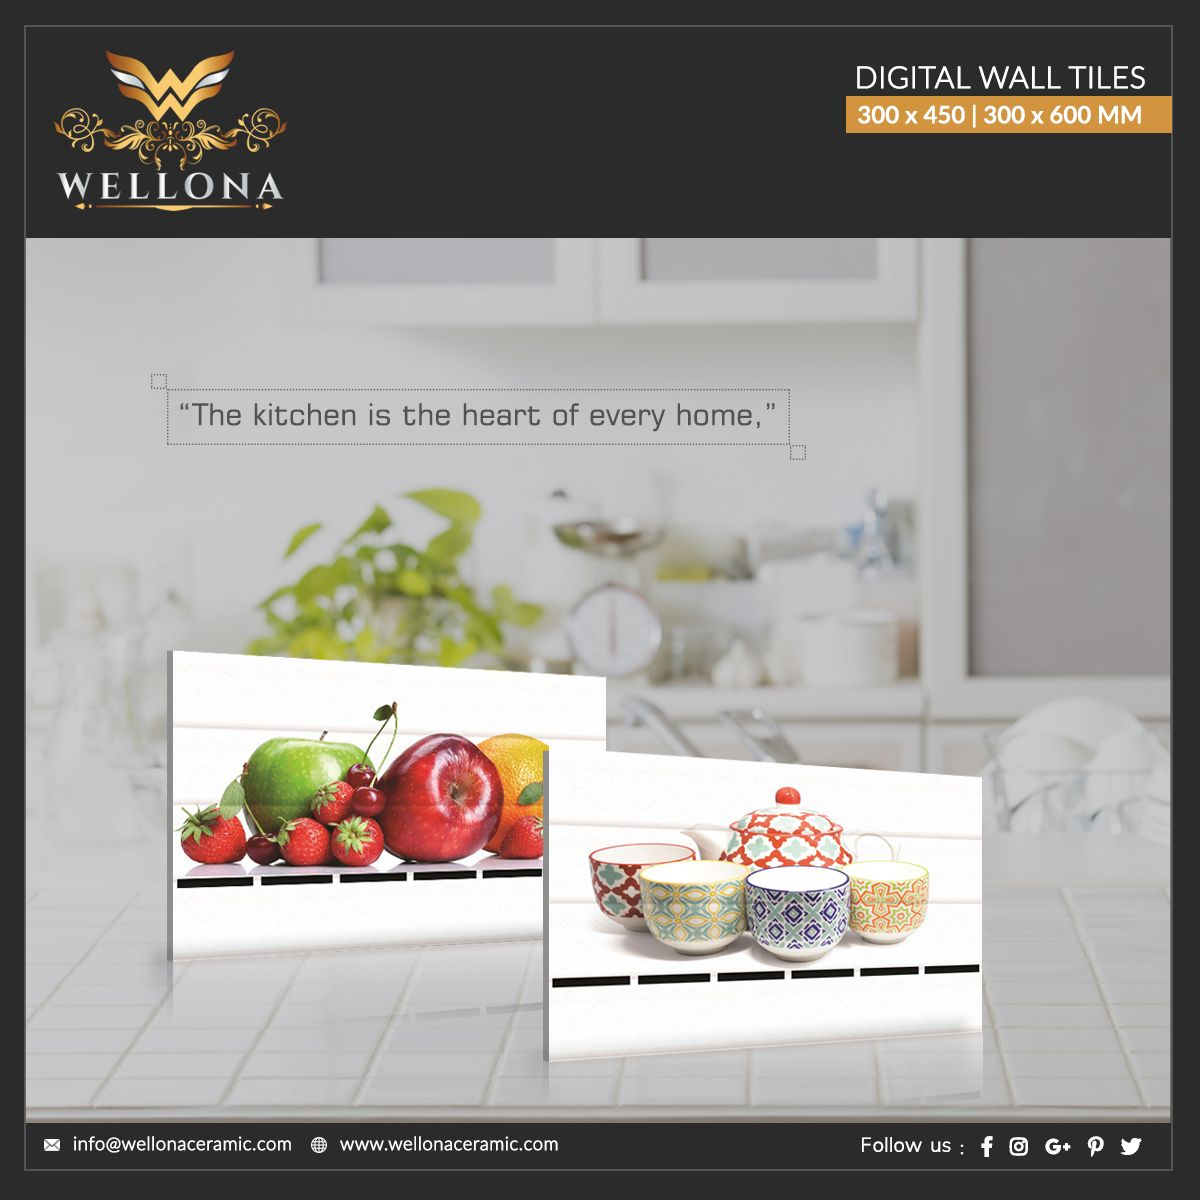 The Kitchen Is The Heart Of Every Home Manufacture Exporter Of Digital Wall Tiles 300x600mm 300x450mm Wellonadesigns Well Wall Tiles Digital Wall Tiles